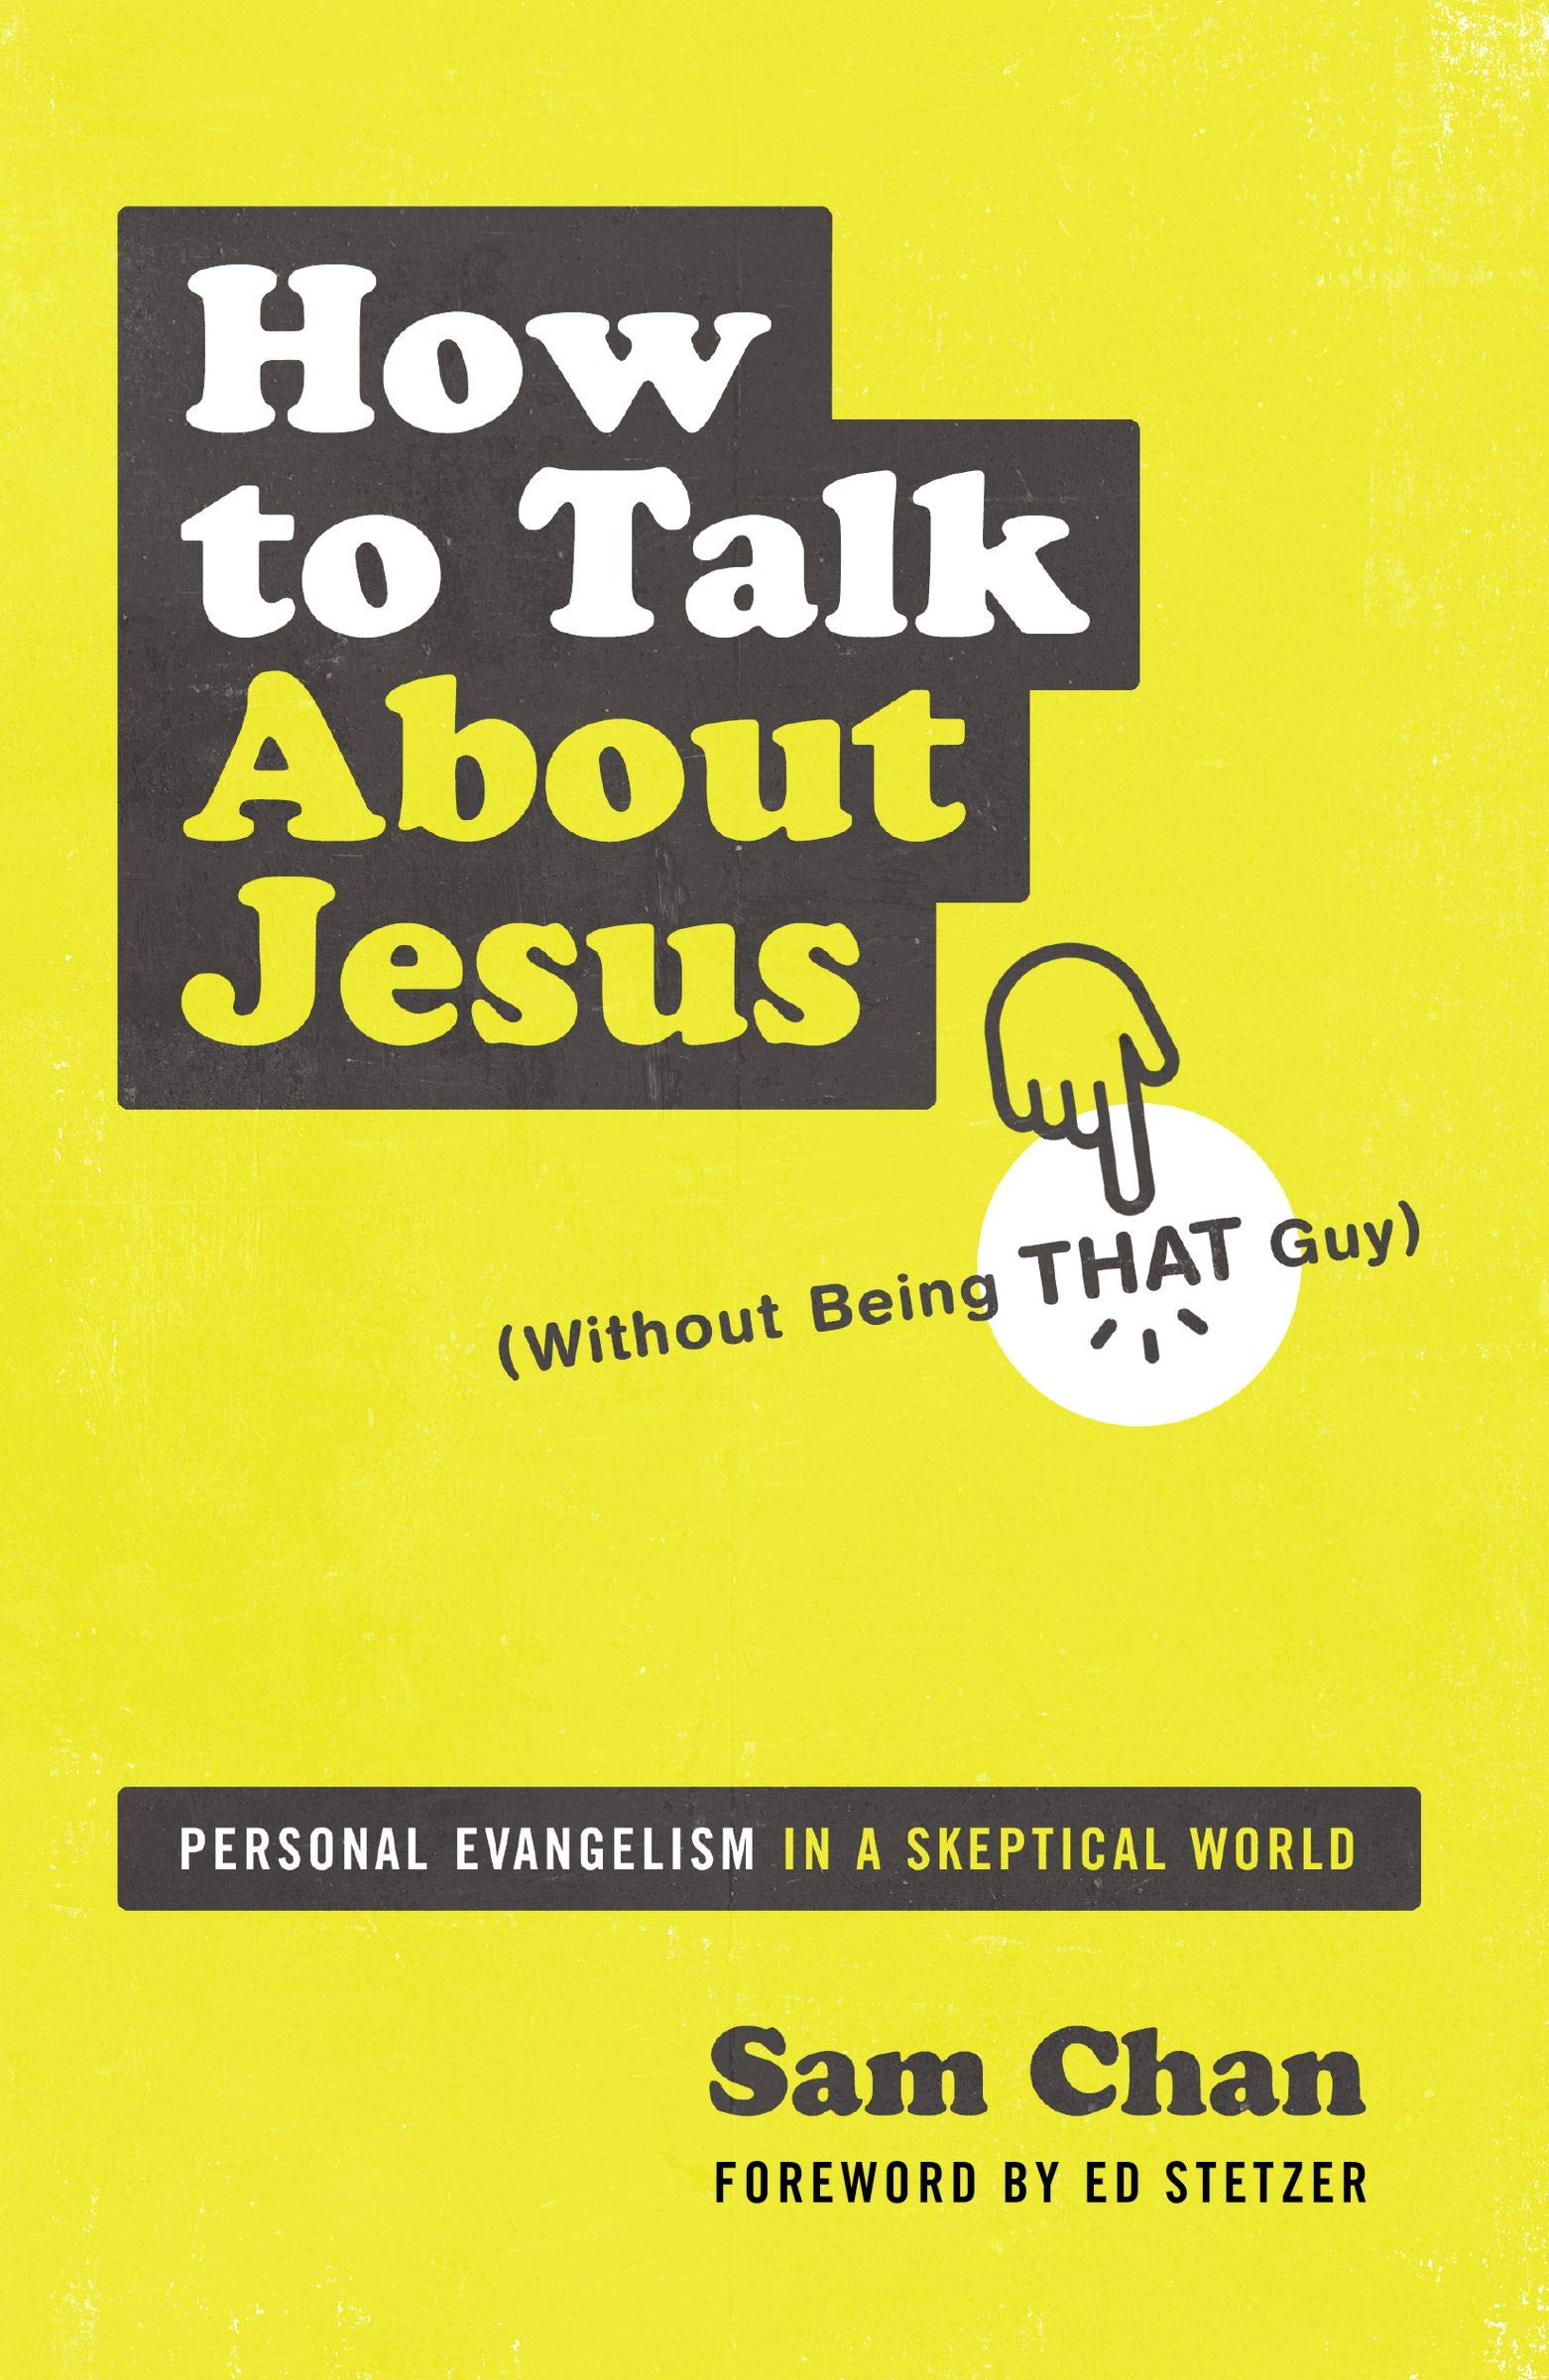 How to Talk about Jesus (Without Being That Guy): Personal Evangelism in a  Skeptical World: Chan, Sam, Ed Stetzer: Amazon.com: Books